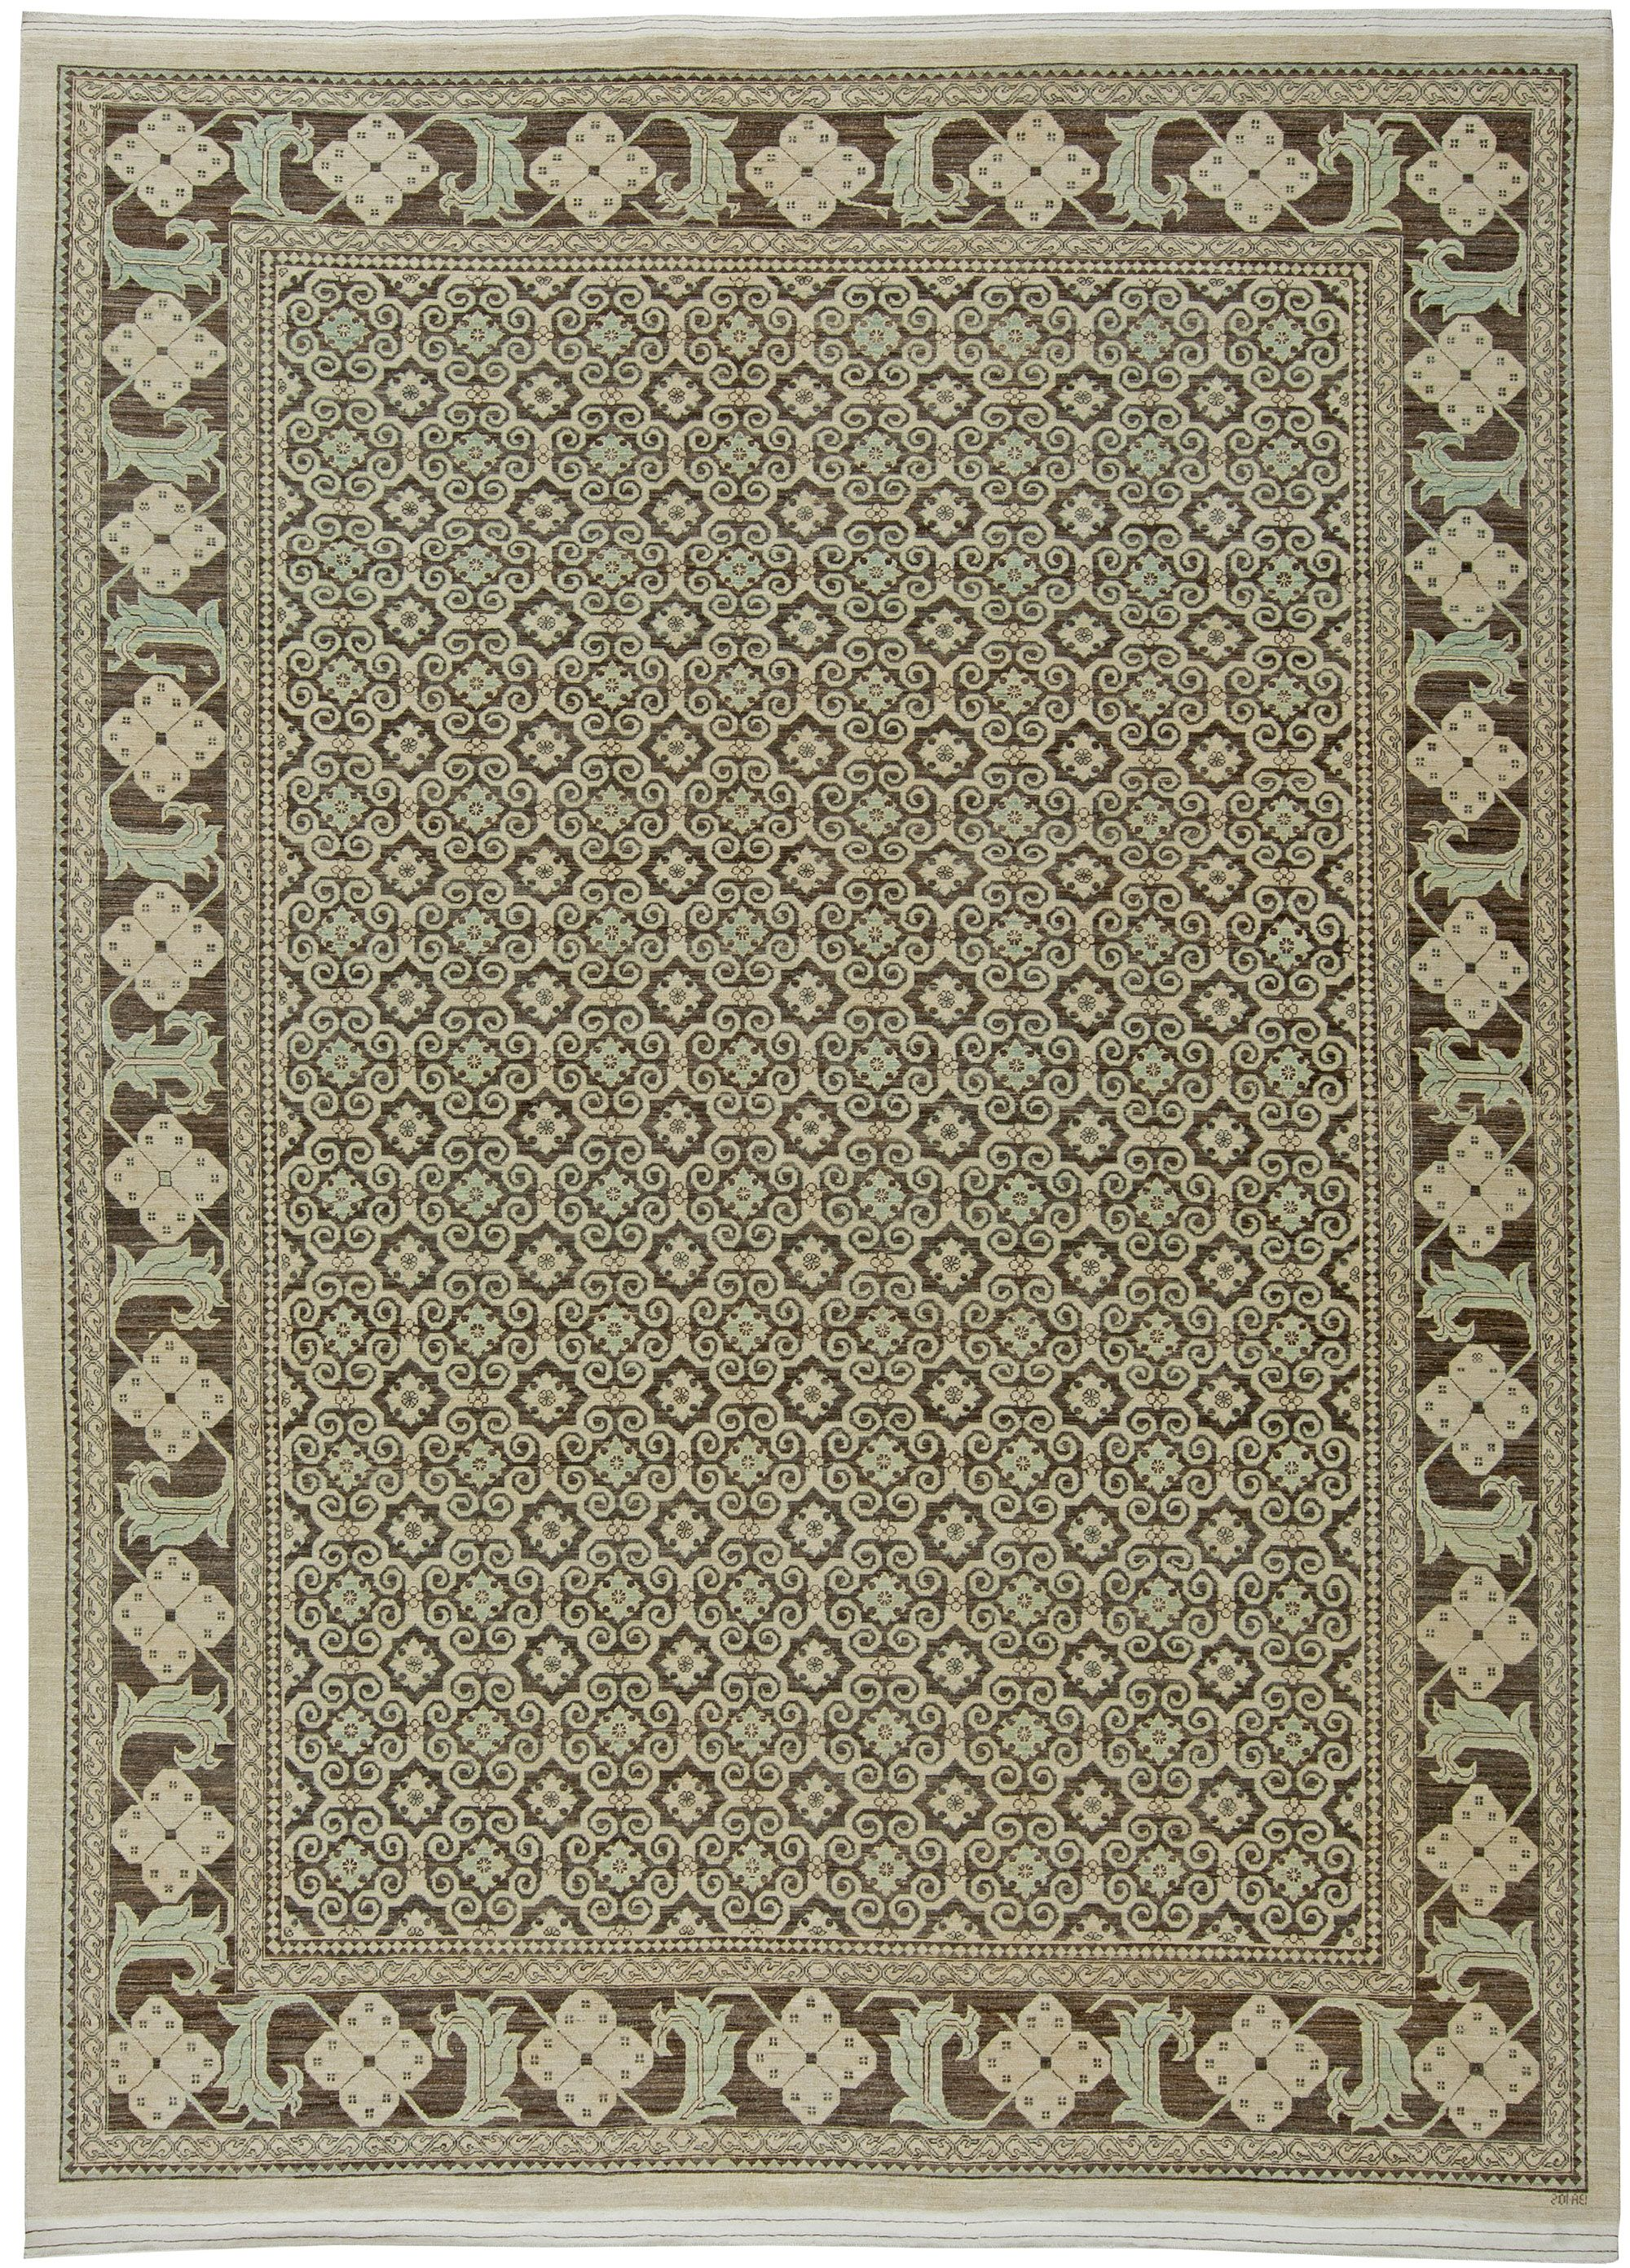 A modern rug of a traditional look. Perfect choice for traditional interiors as well as for a modern interior design. The carpet is of a very good quality Price: $15,000